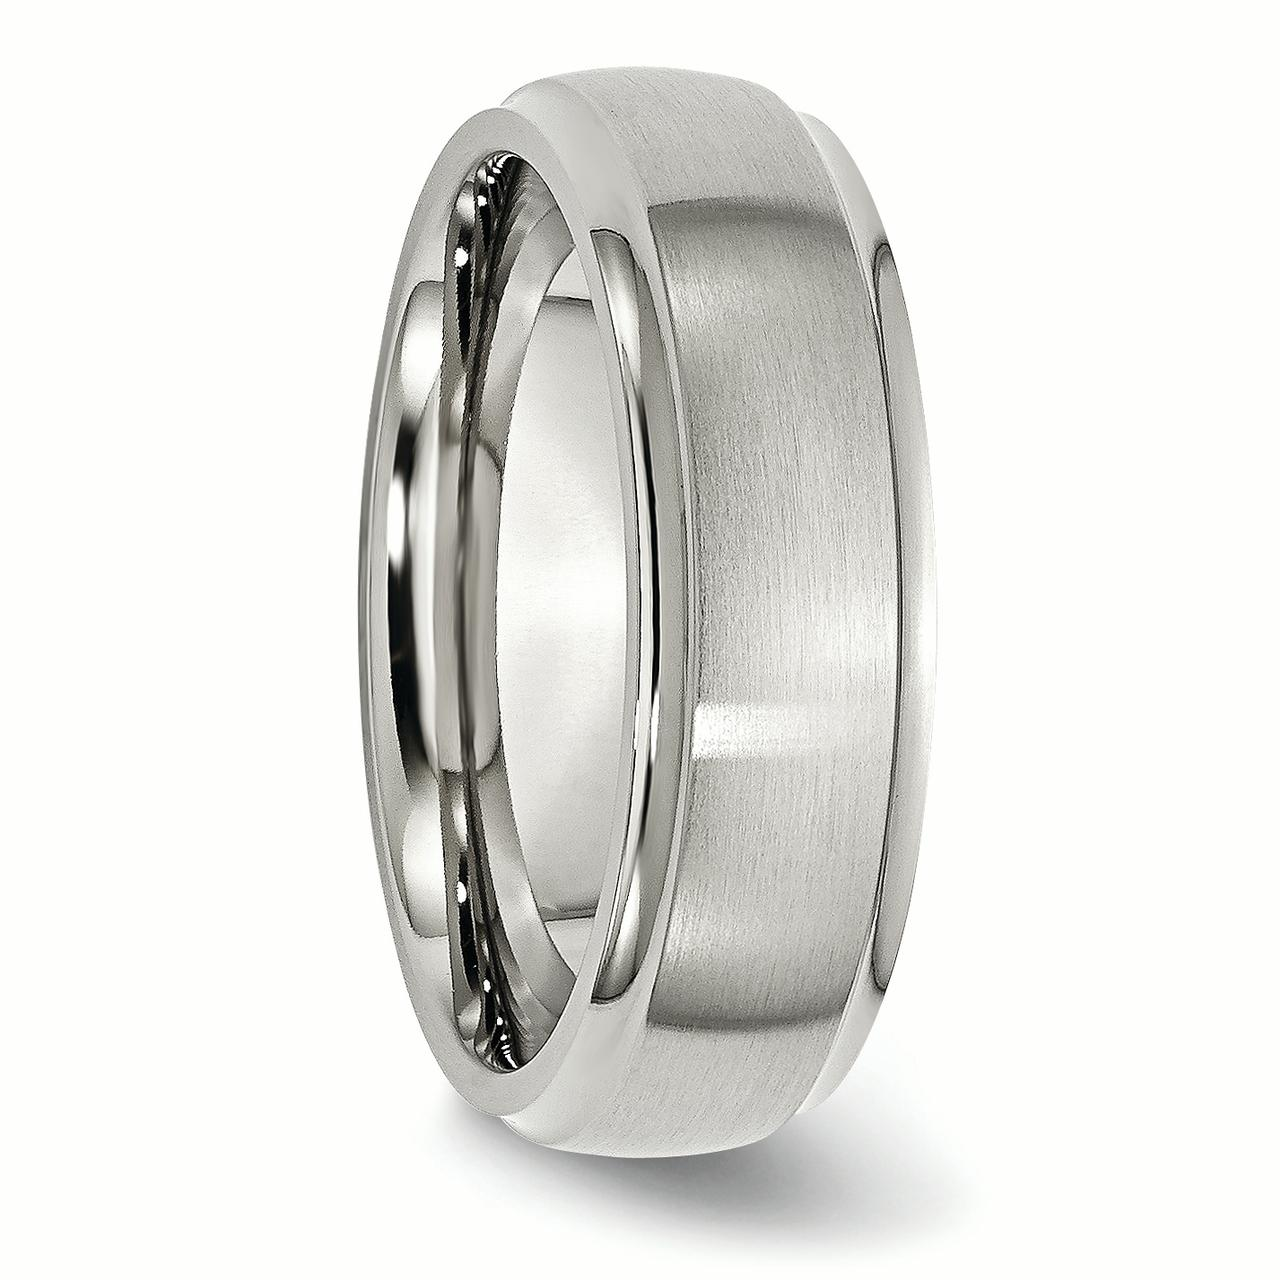 Wedding Bands Classic Bands Domed Bands w//Edge Titanium Ridged Edge 7mm Brushed and Polished Band Size 10